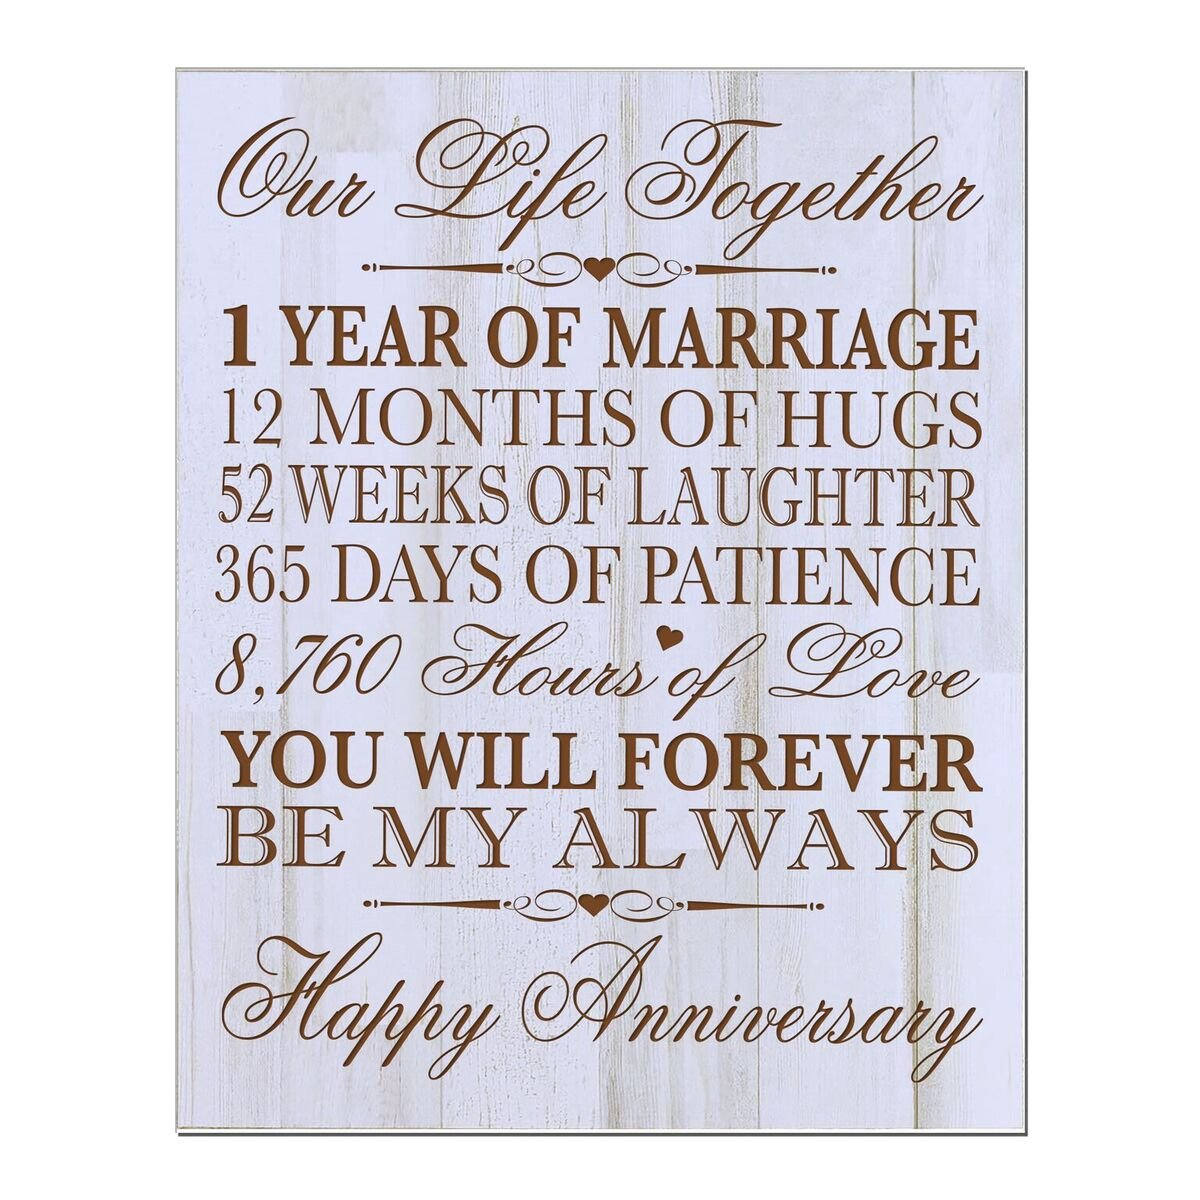 LifeSong Milestones 1st Wedding Anniversary Wall Plaque Gifts for Couple, 1st for Her,1st Wedding for Him 12'' W X 15'' H Wall Plaque (Distressed Wood) by LifeSong Milestones